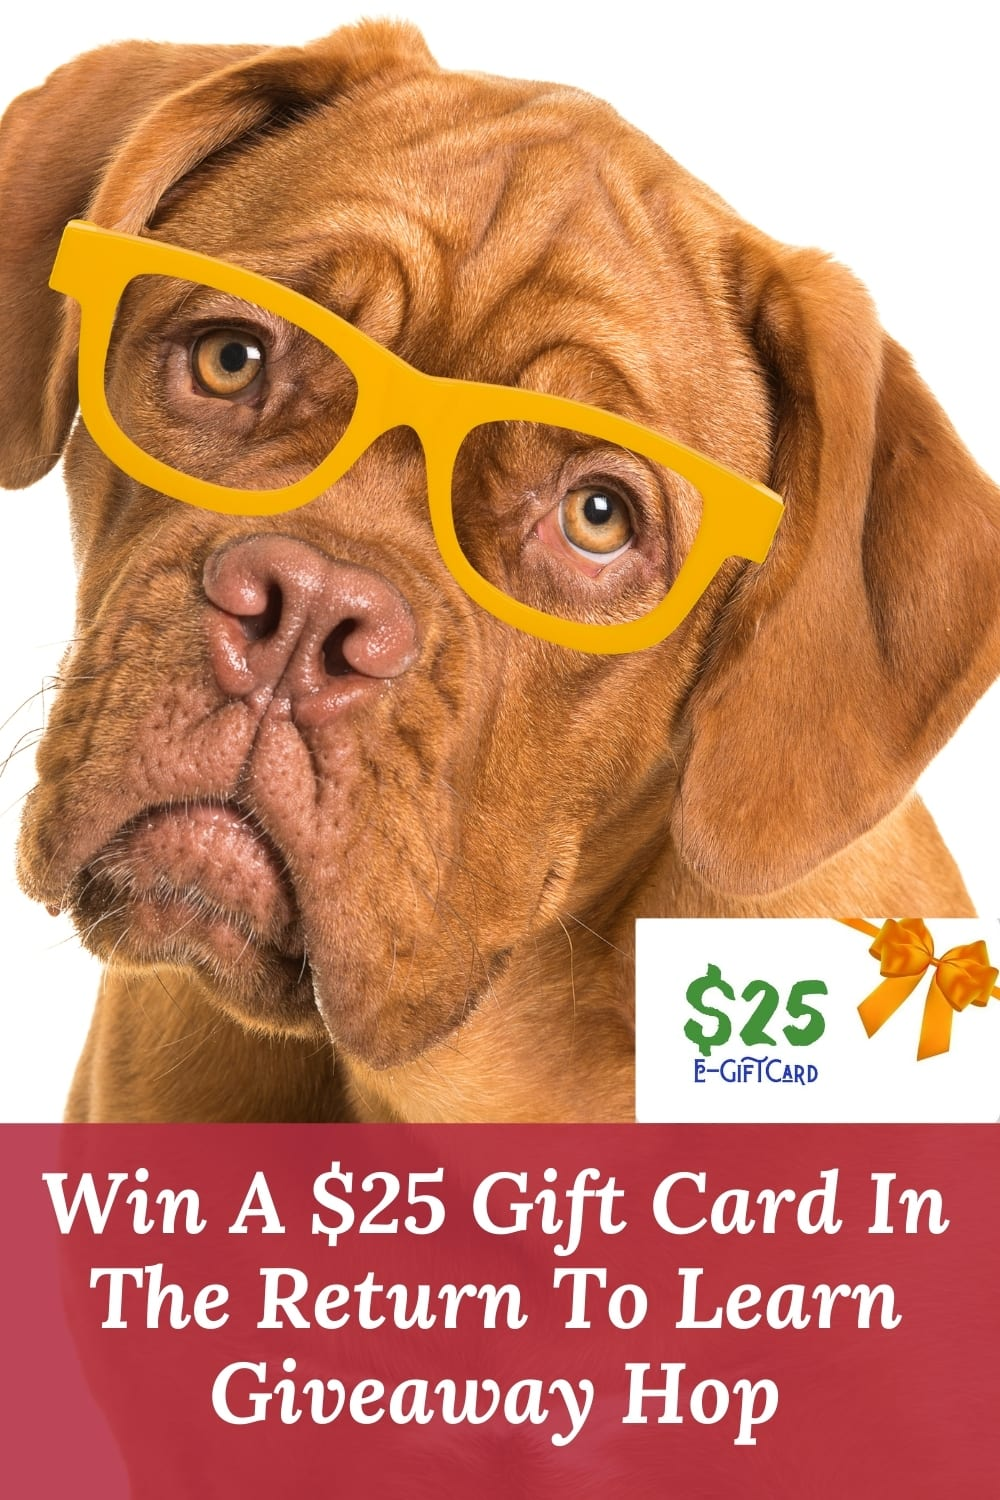 $25 giftcard ~ win it in the return to learn giveaway hop ~ ends 8-18